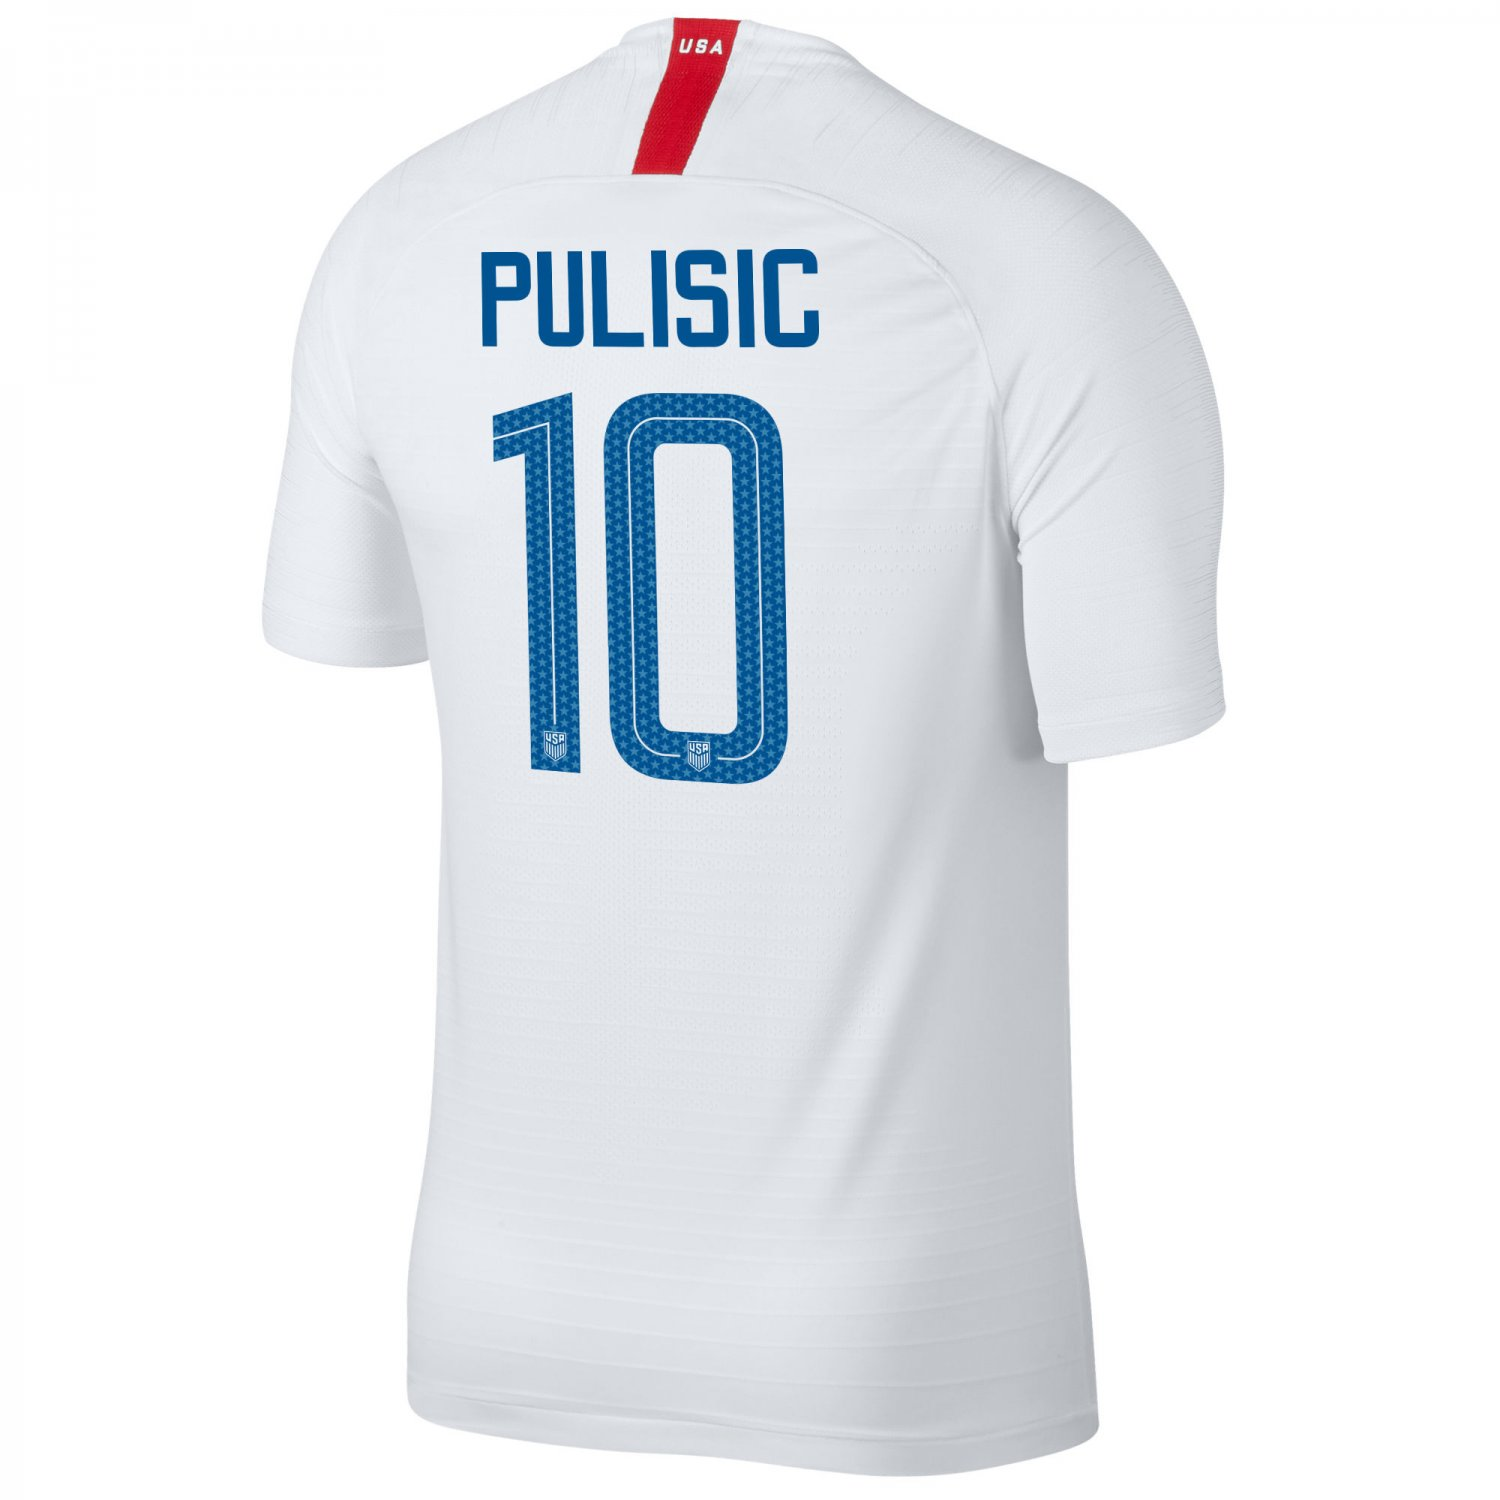 163e726e787 USA 2018 19 Pulisic  10 Youth Home jersey – Hooked on Soccer